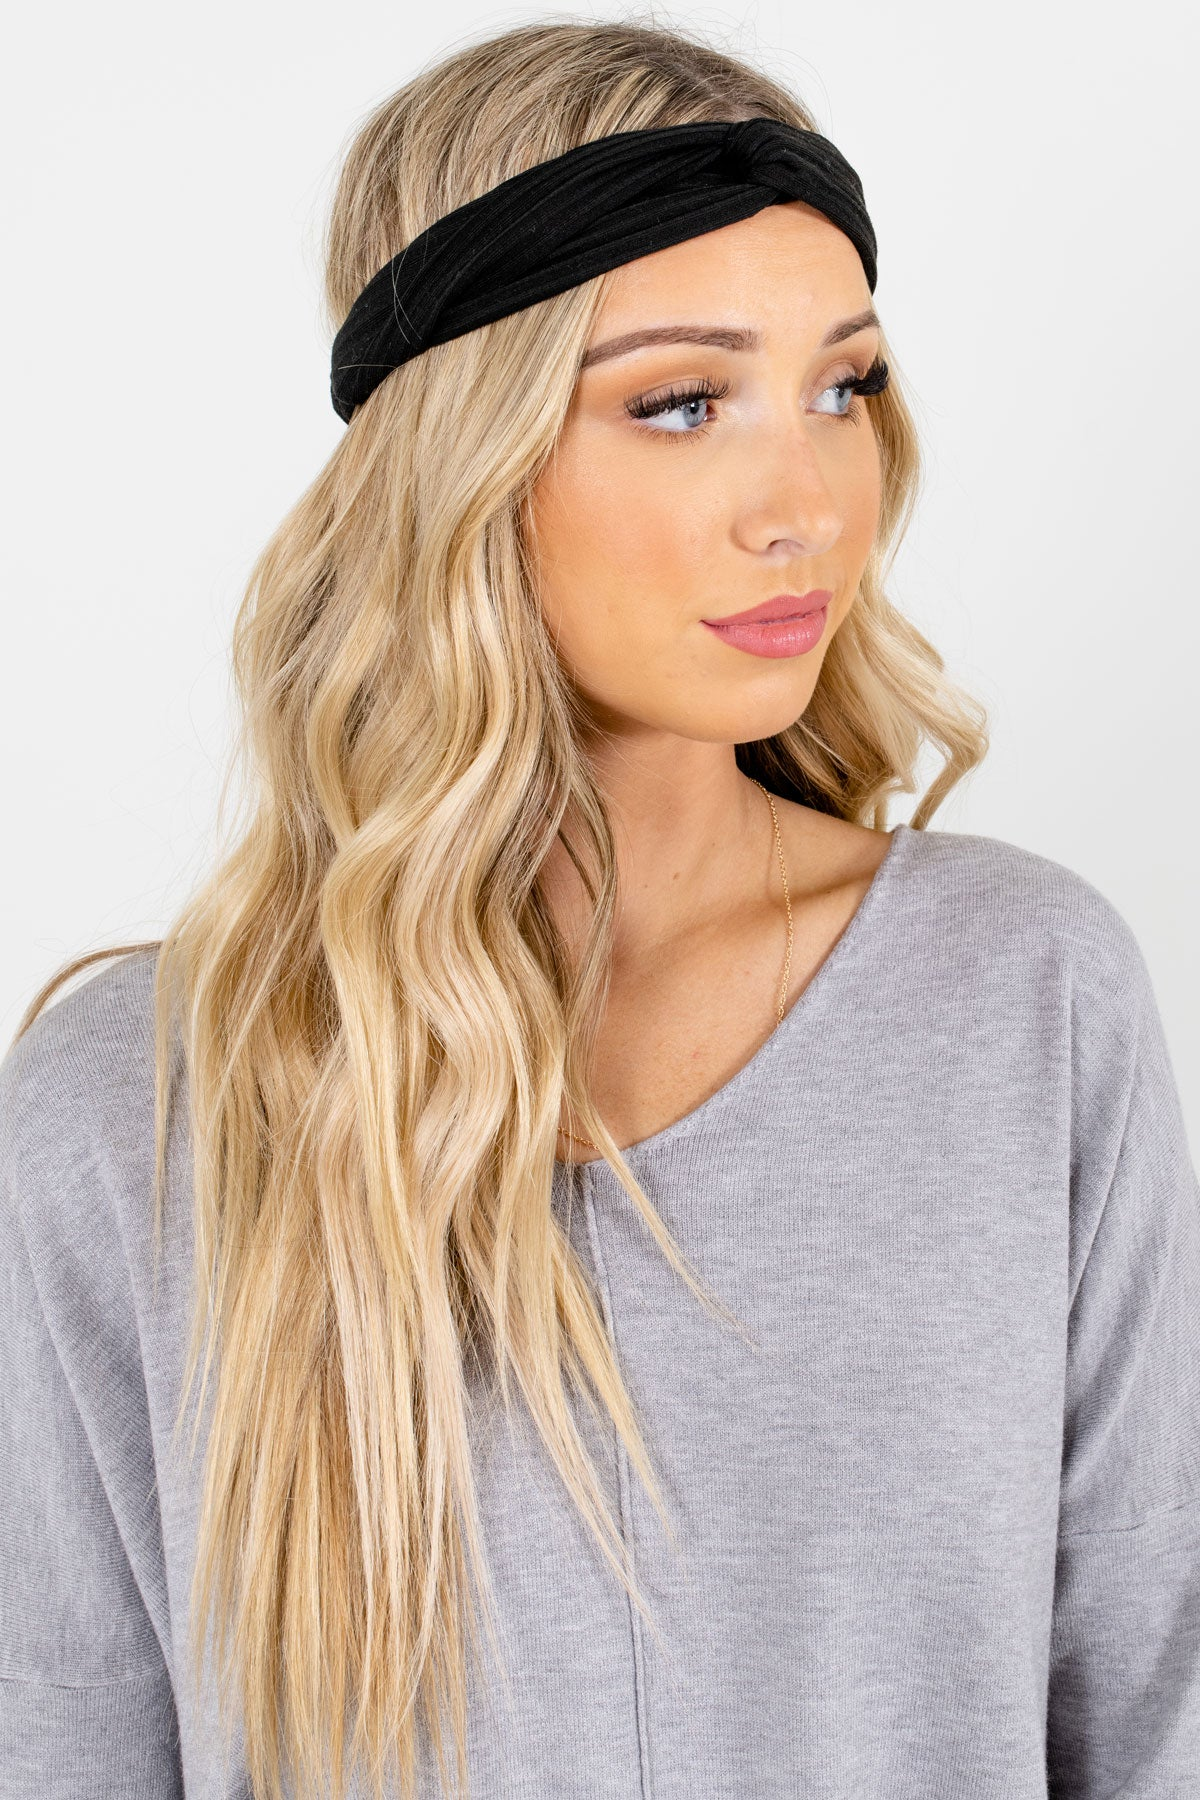 Black Ribbed Material Boutique Headbands for Women